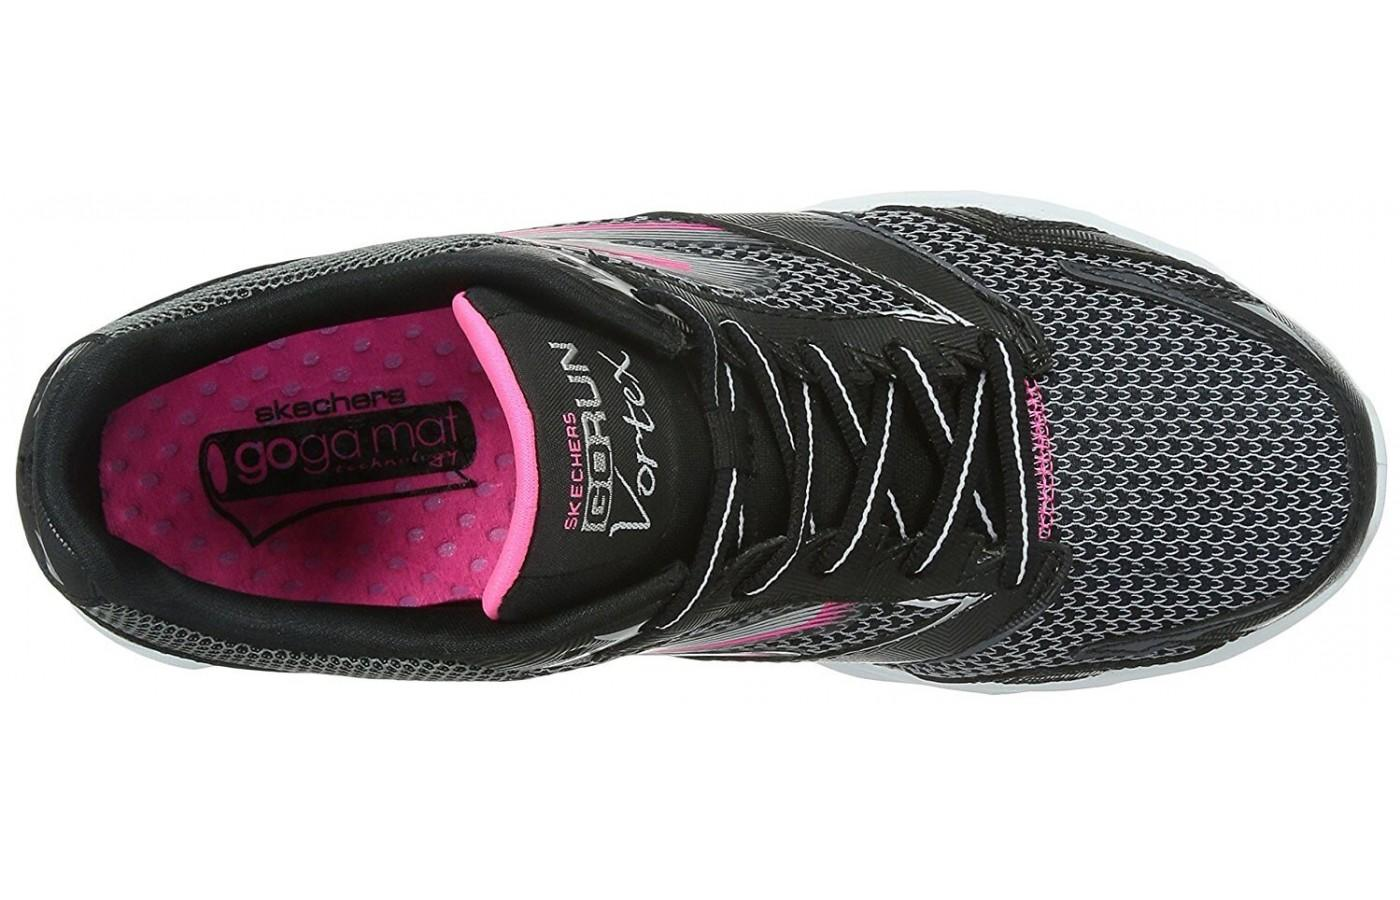 Traditional laces come with the Skechers GoRun Vortex